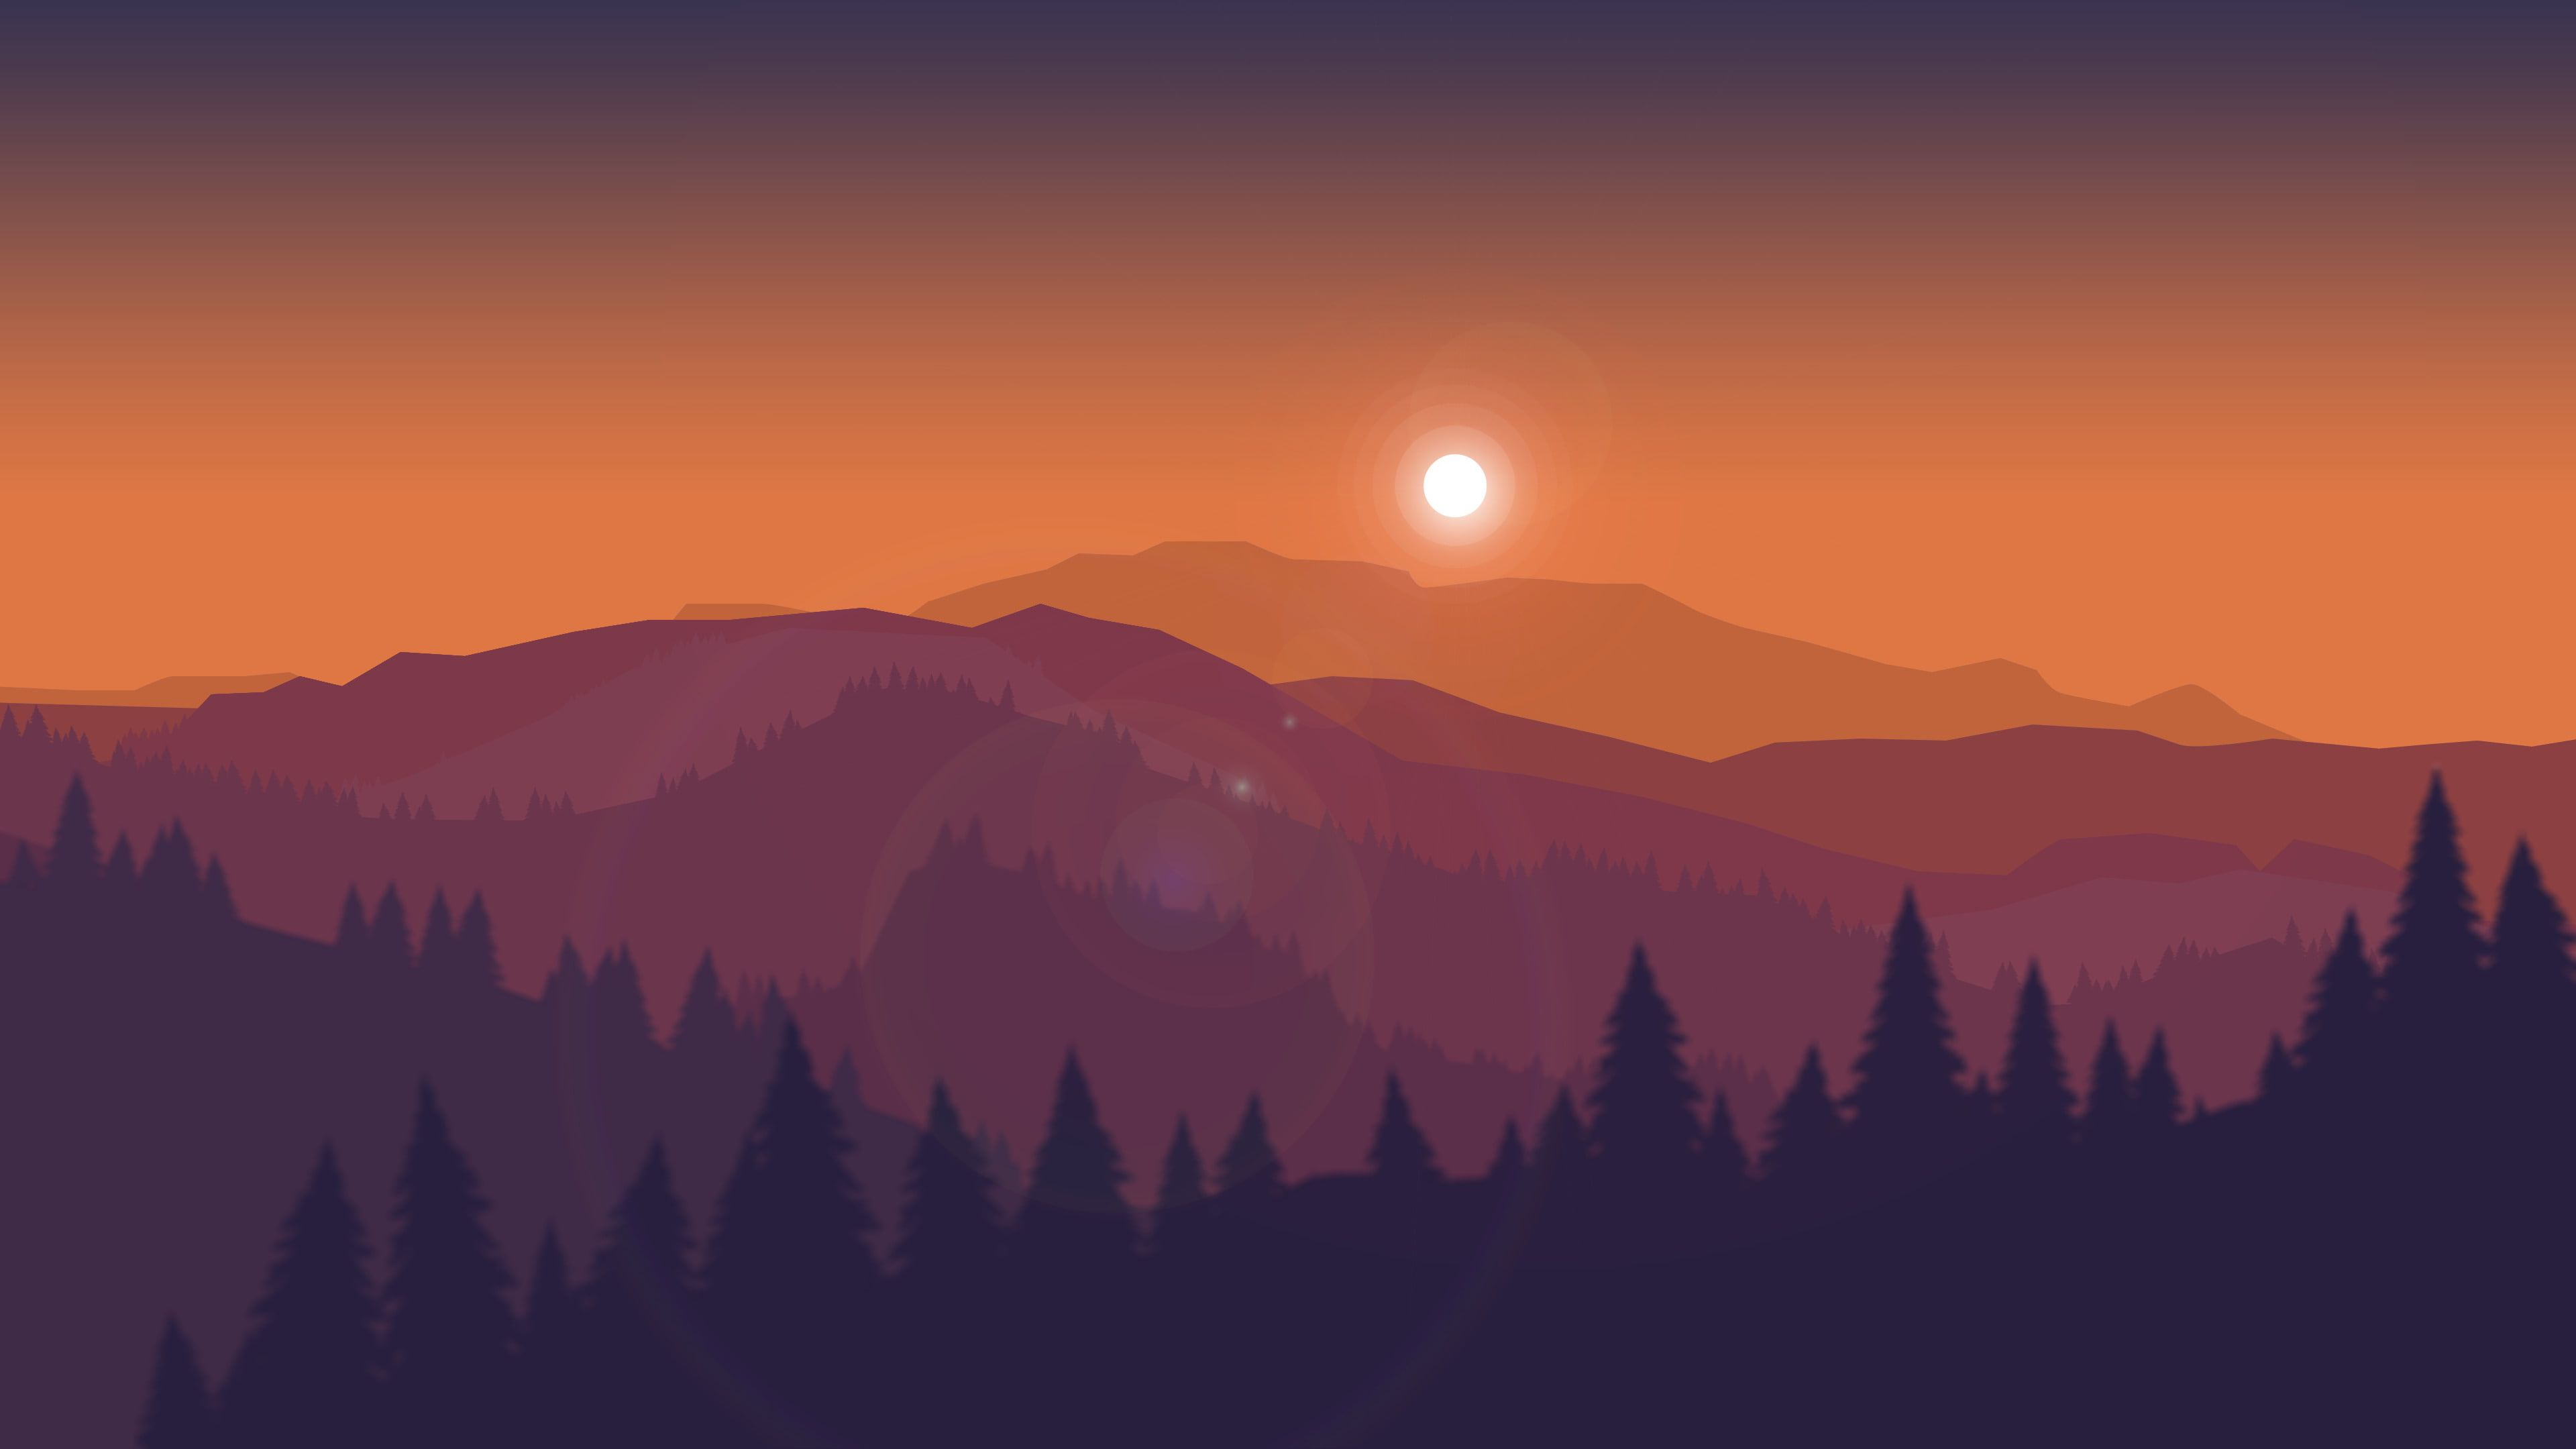 Sunset Mountains Firewatch Minimal Silhouette Hd 4k 4k Wallpaper Hdwallpaper Desktop Landscape Wallpaper Sunset Wallpaper Ipad Wallpaper Watercolor